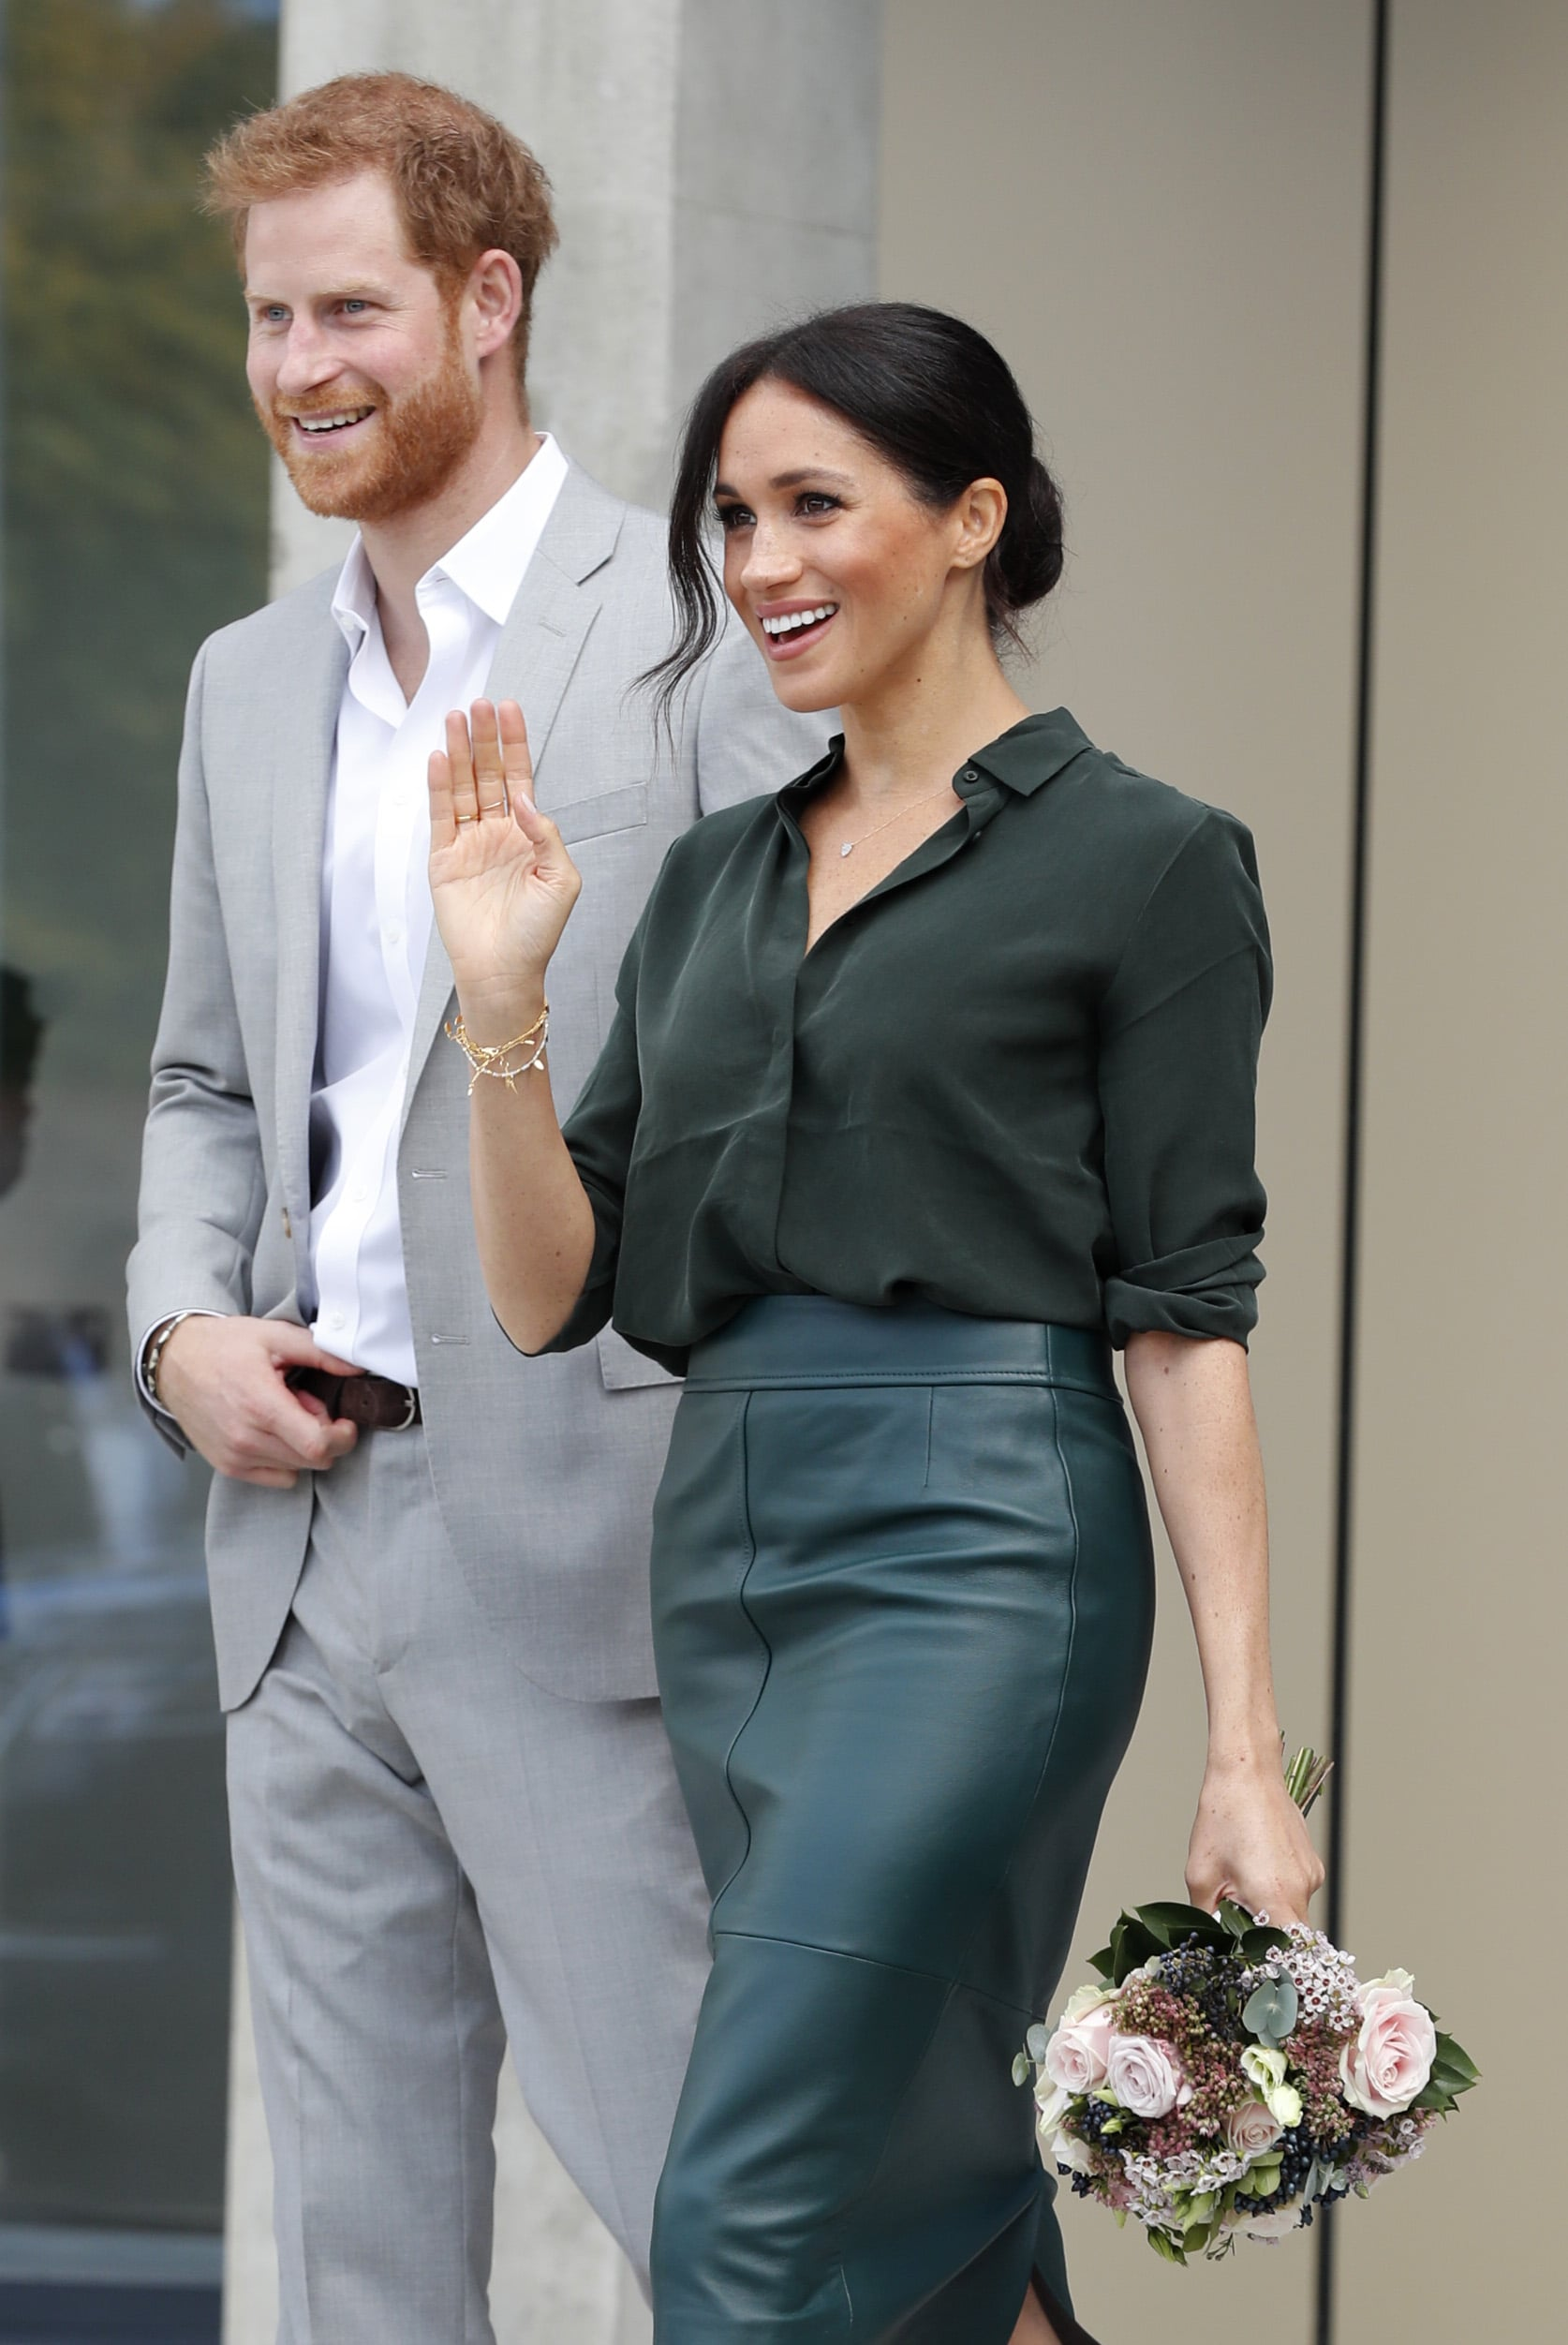 meghan markle cartier watch for daughter popsugar fashion meghan markle cartier watch for